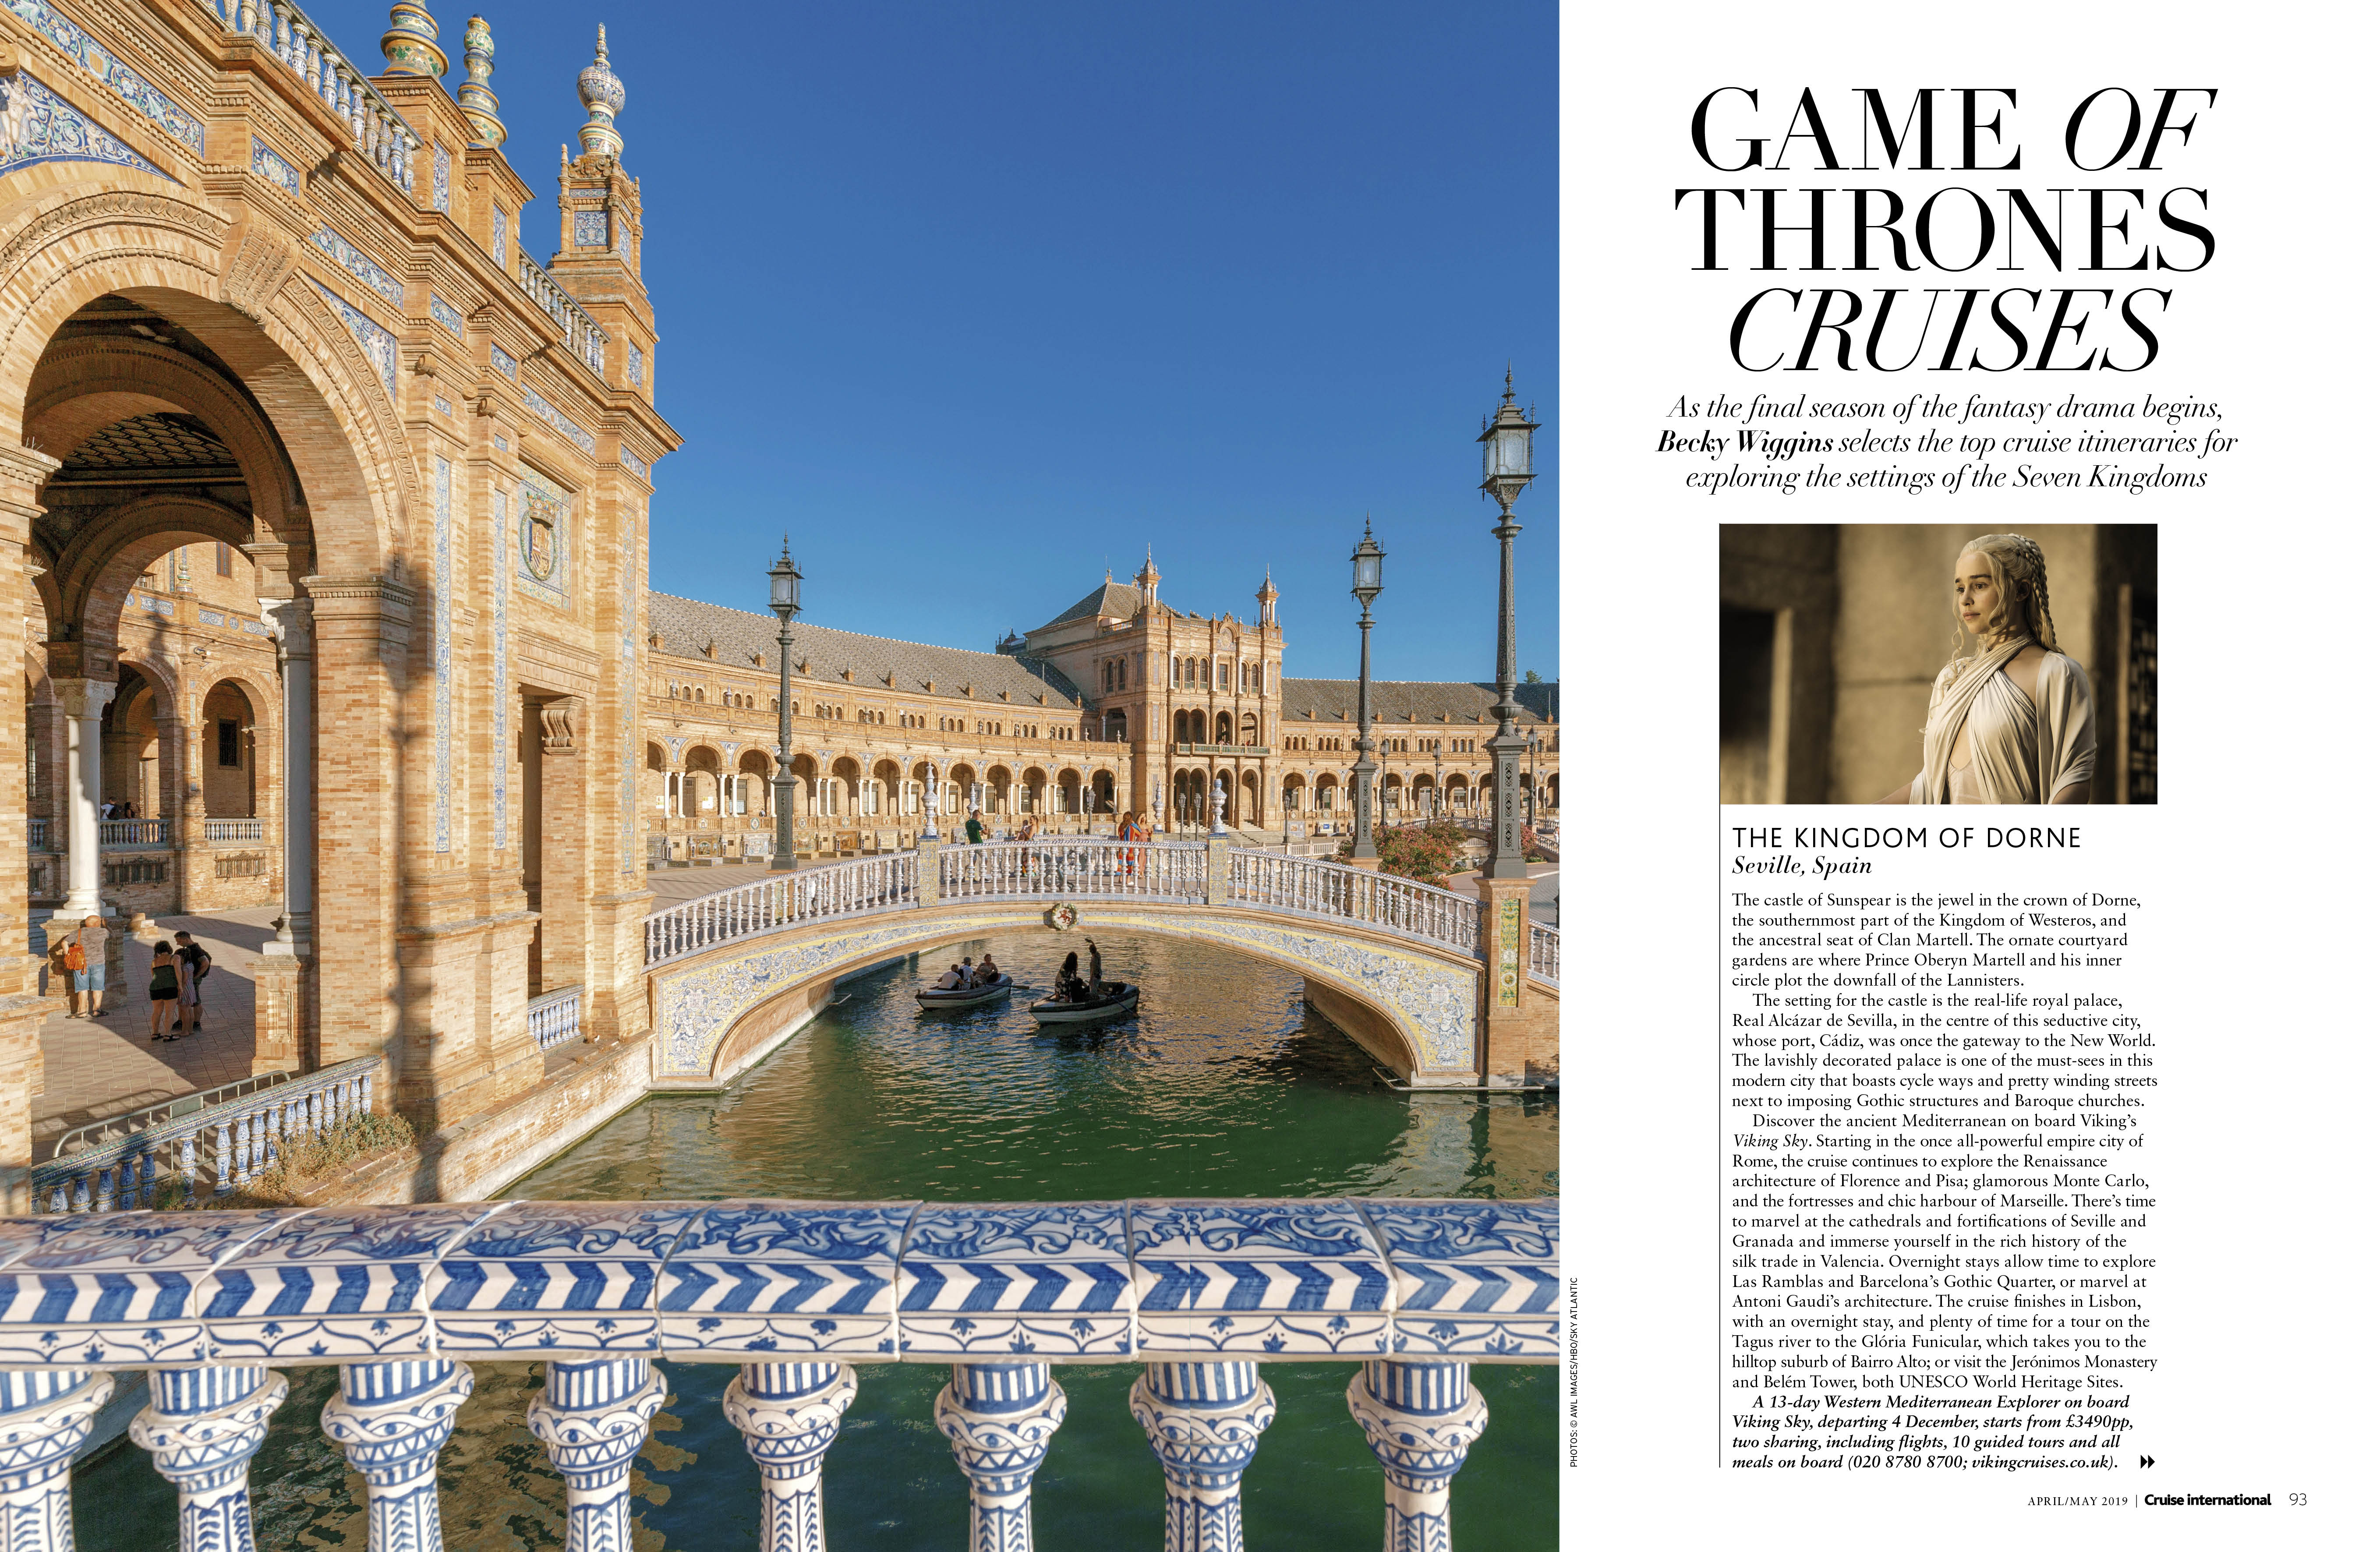 Game of Thrones cruises feature in Cruise International April May 2019